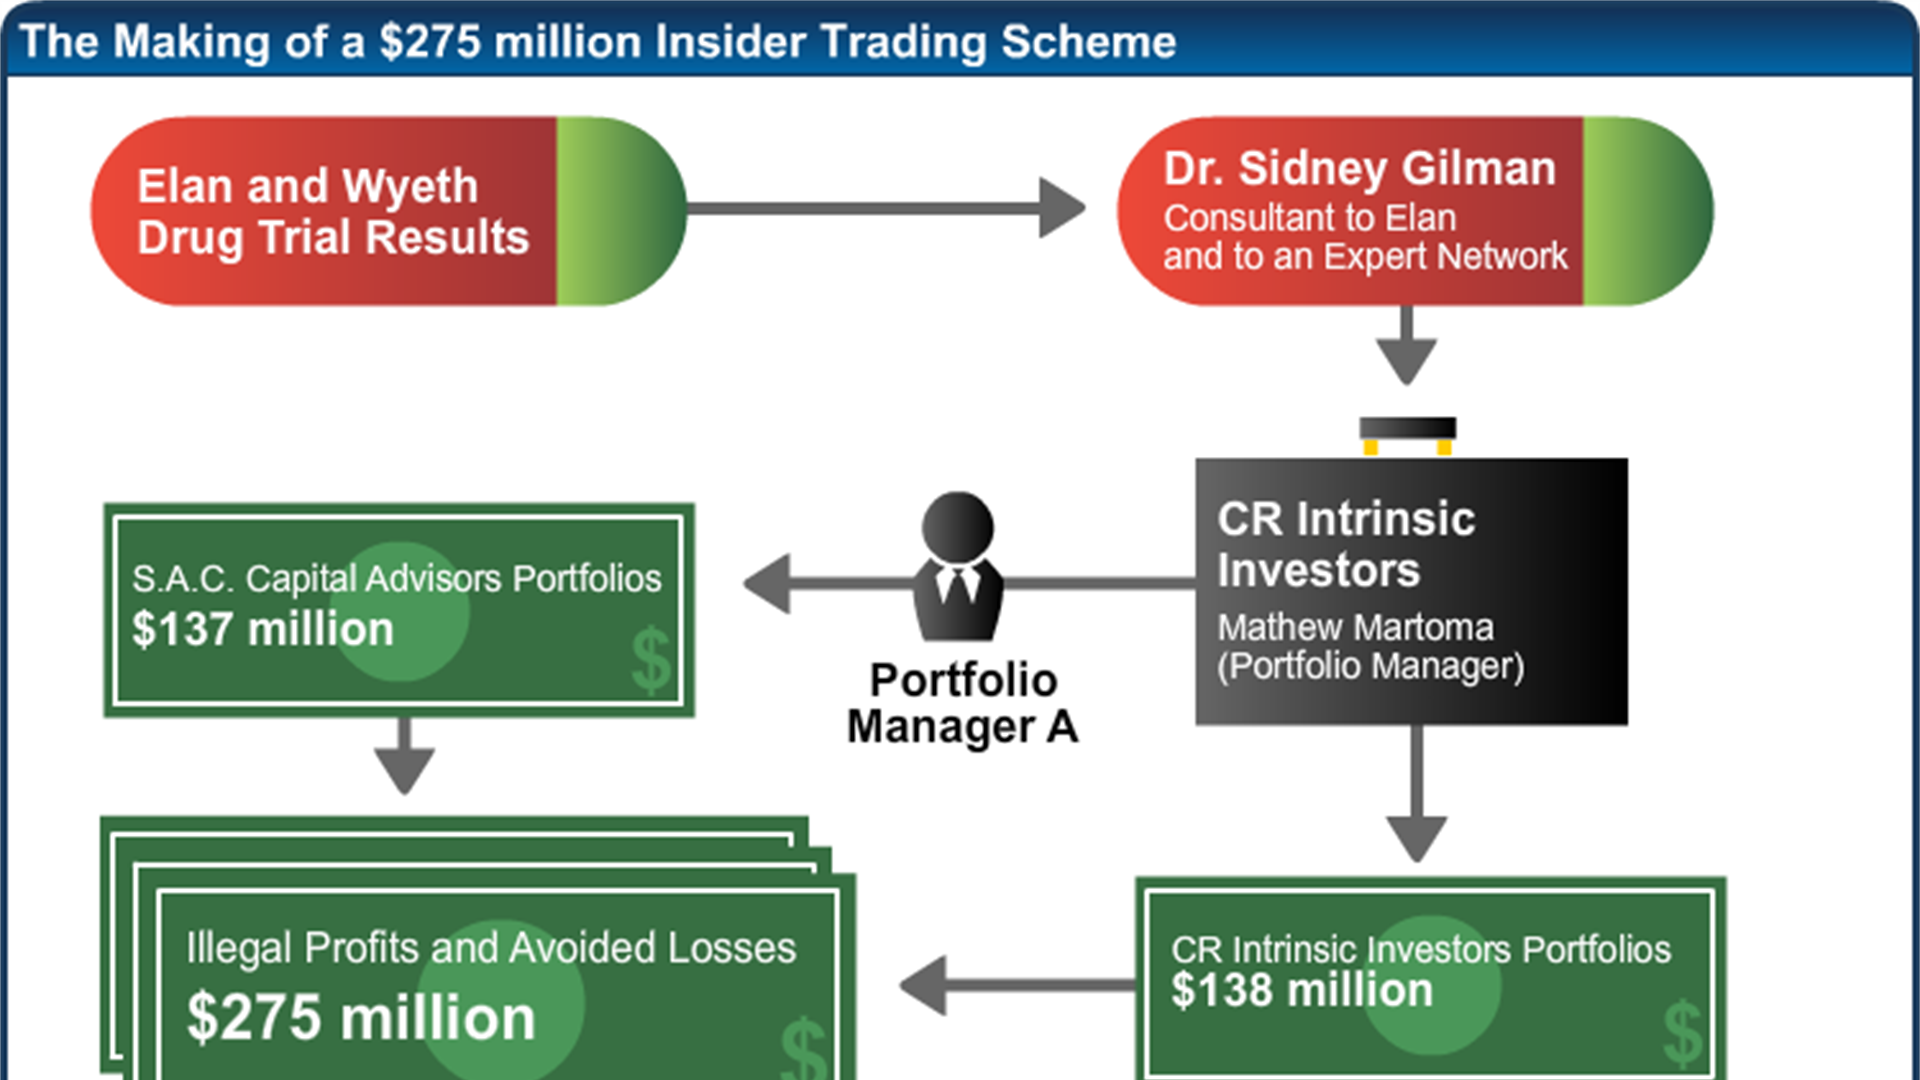 The Making of a $275 million Insider Trading Scheme